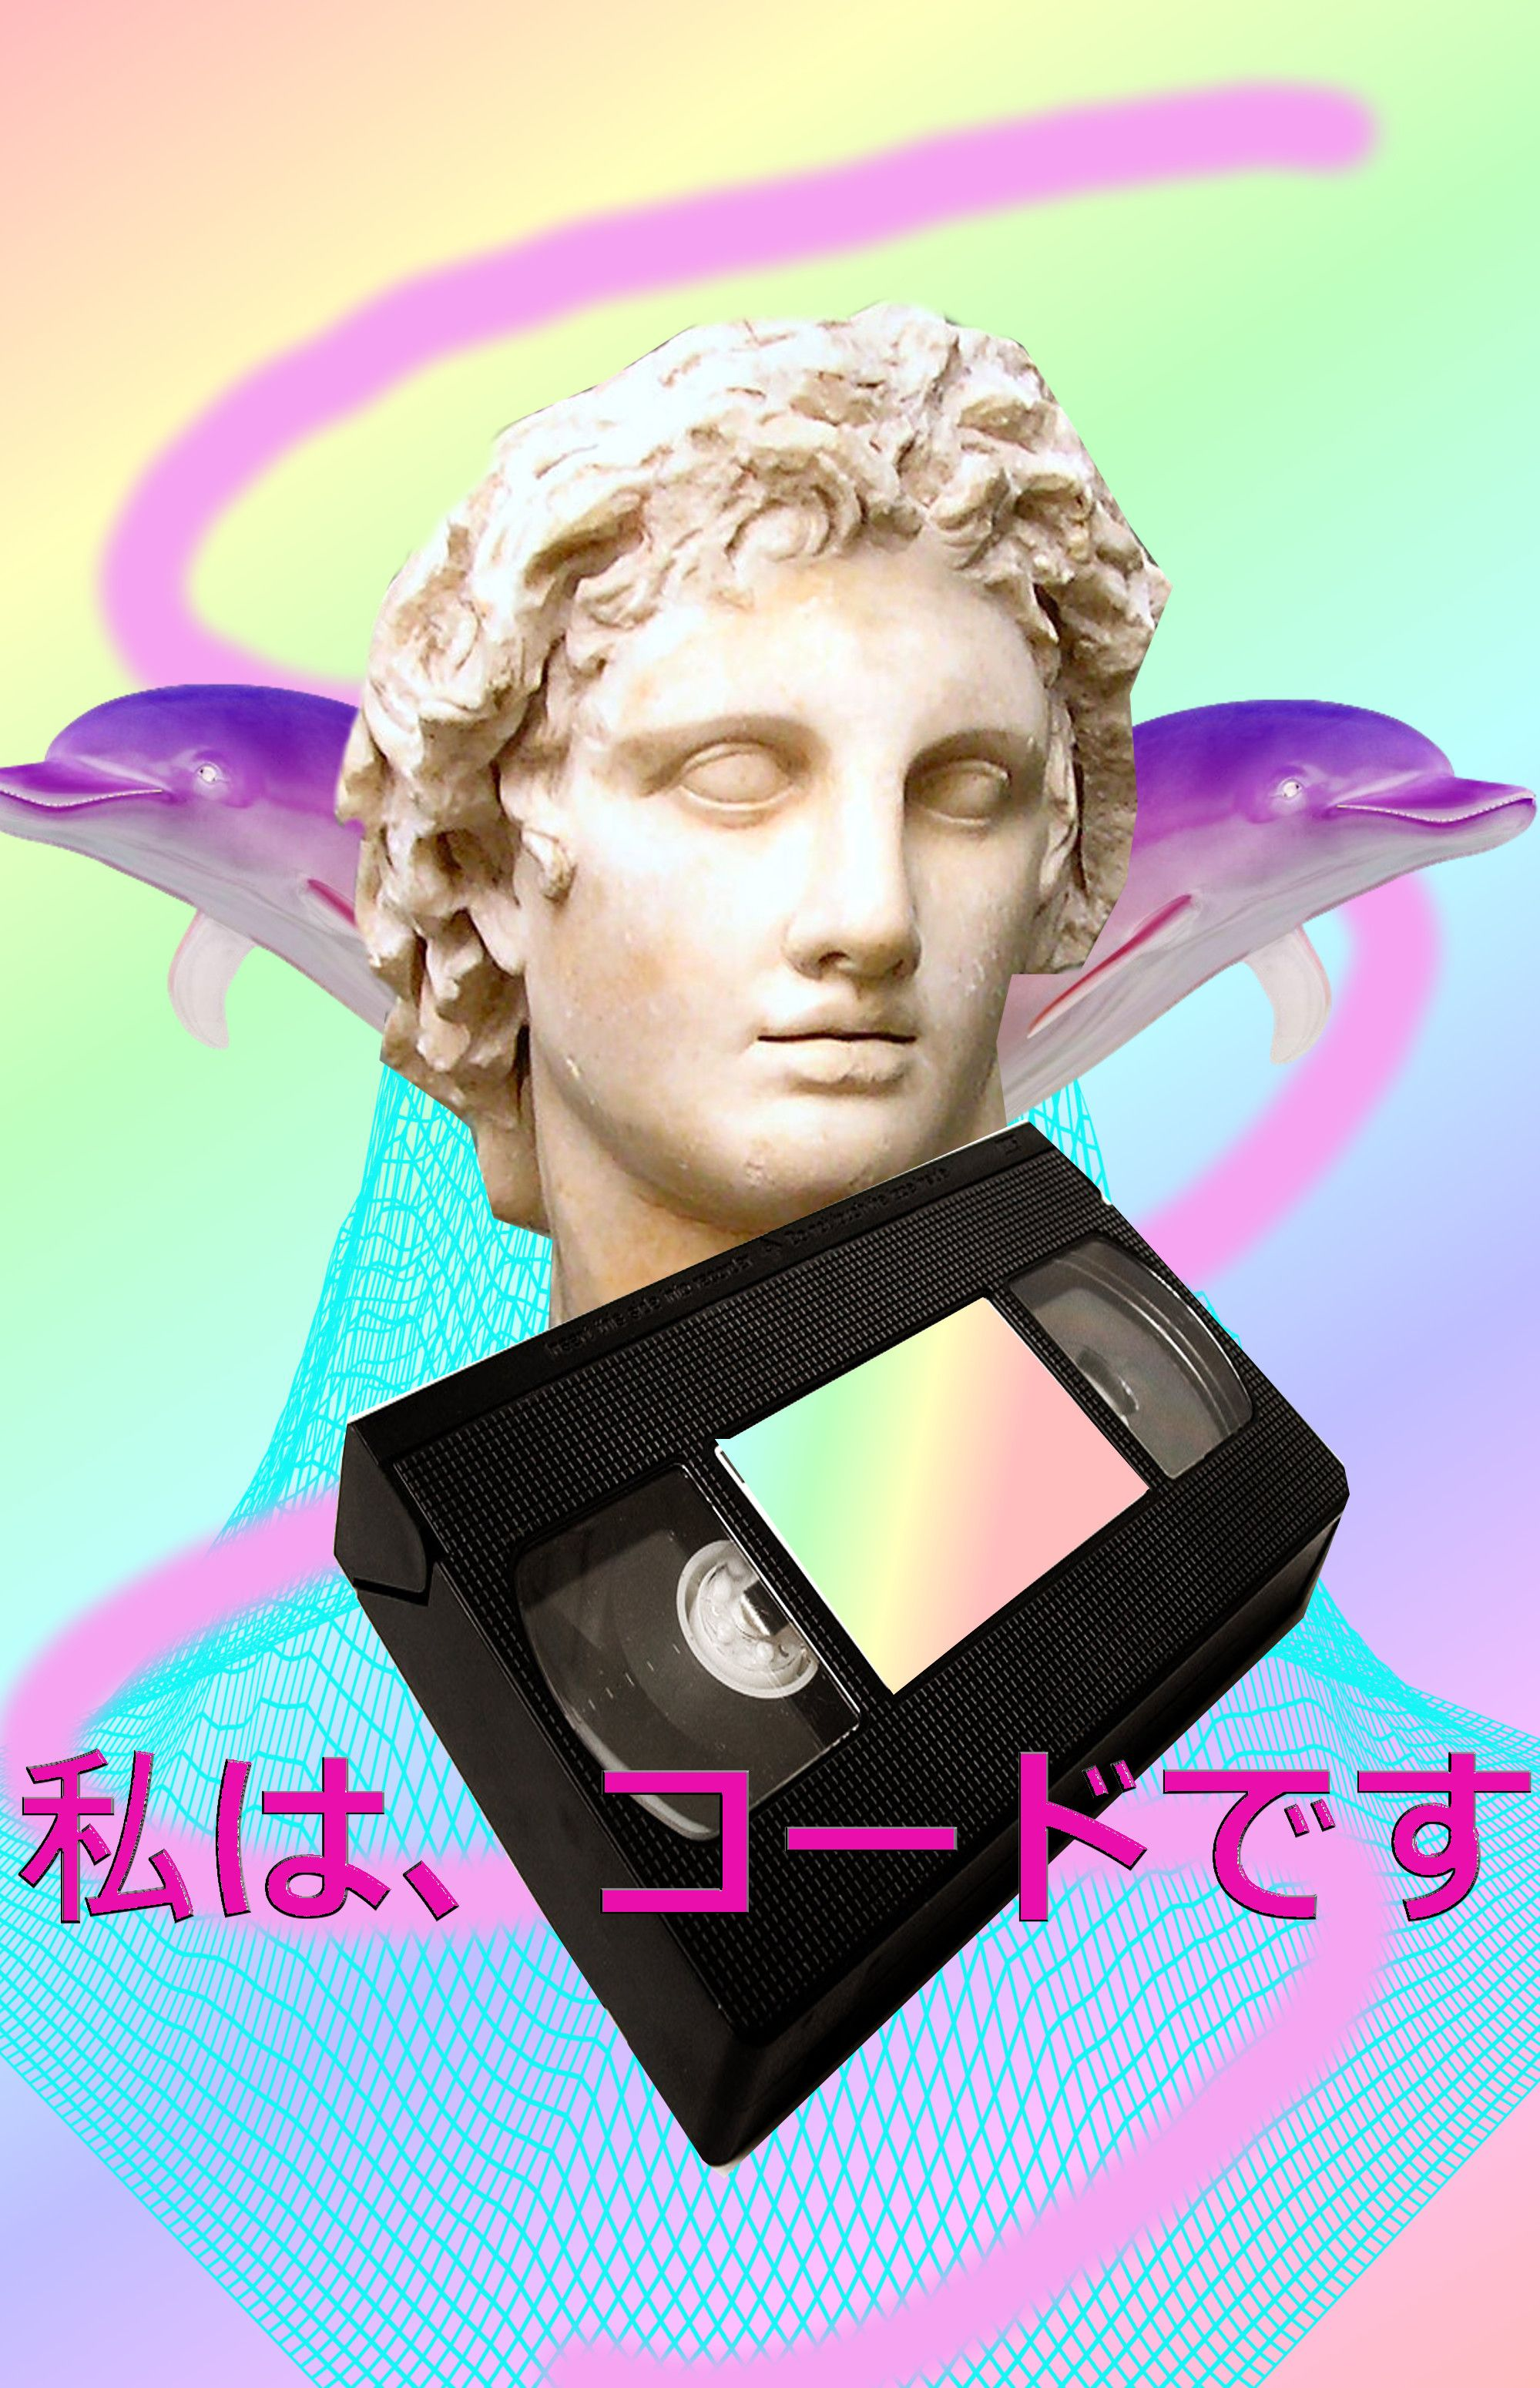 Vaporwave iphone wallpaper tumblr - I Am God Follow Http Capersnvapors Tumblr Com For More